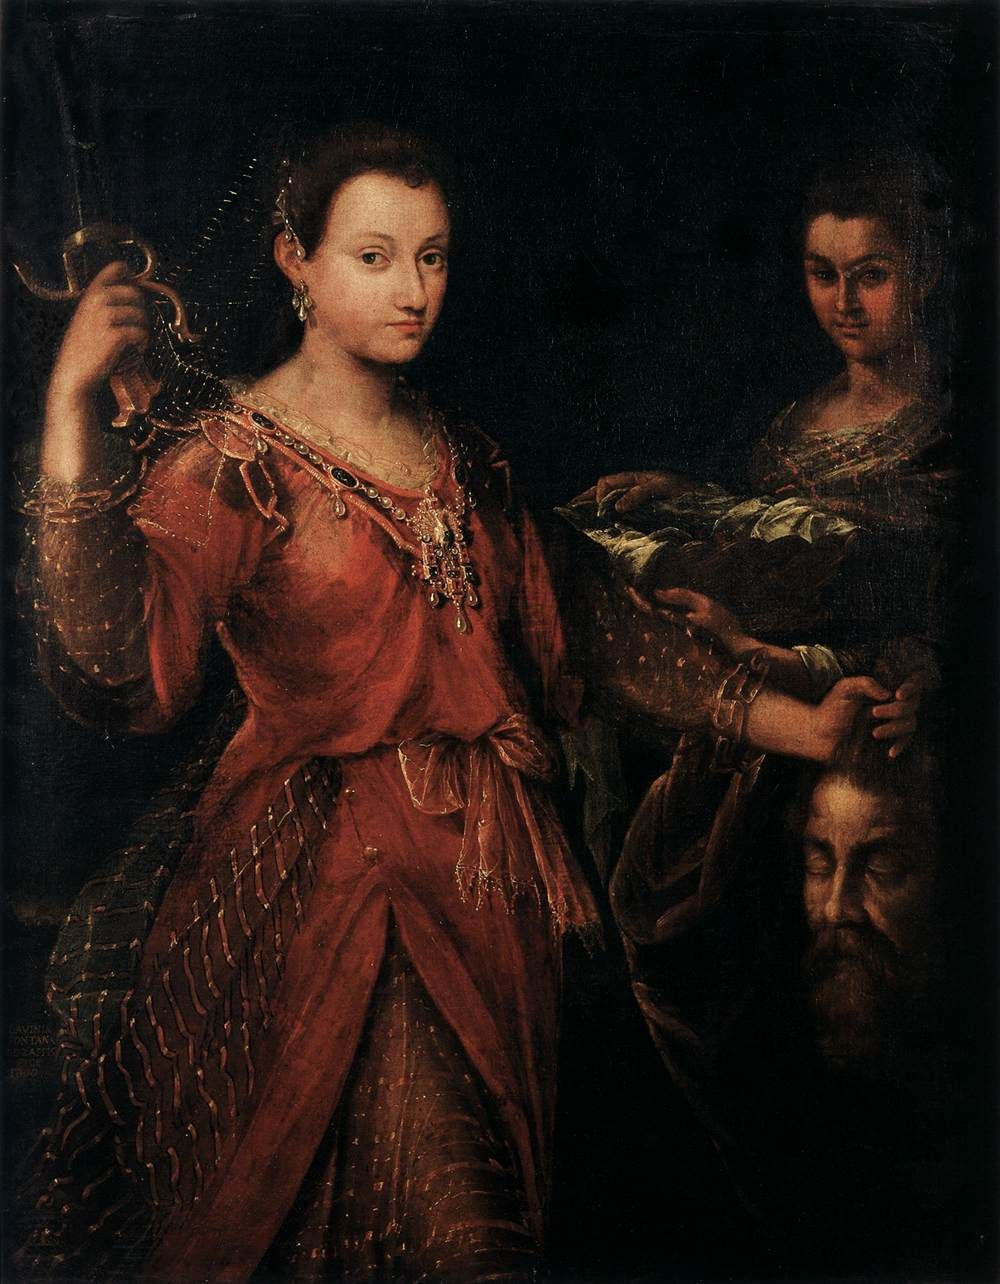 Style De La Renaissance lavinia fontana, woman painter between renaissance and